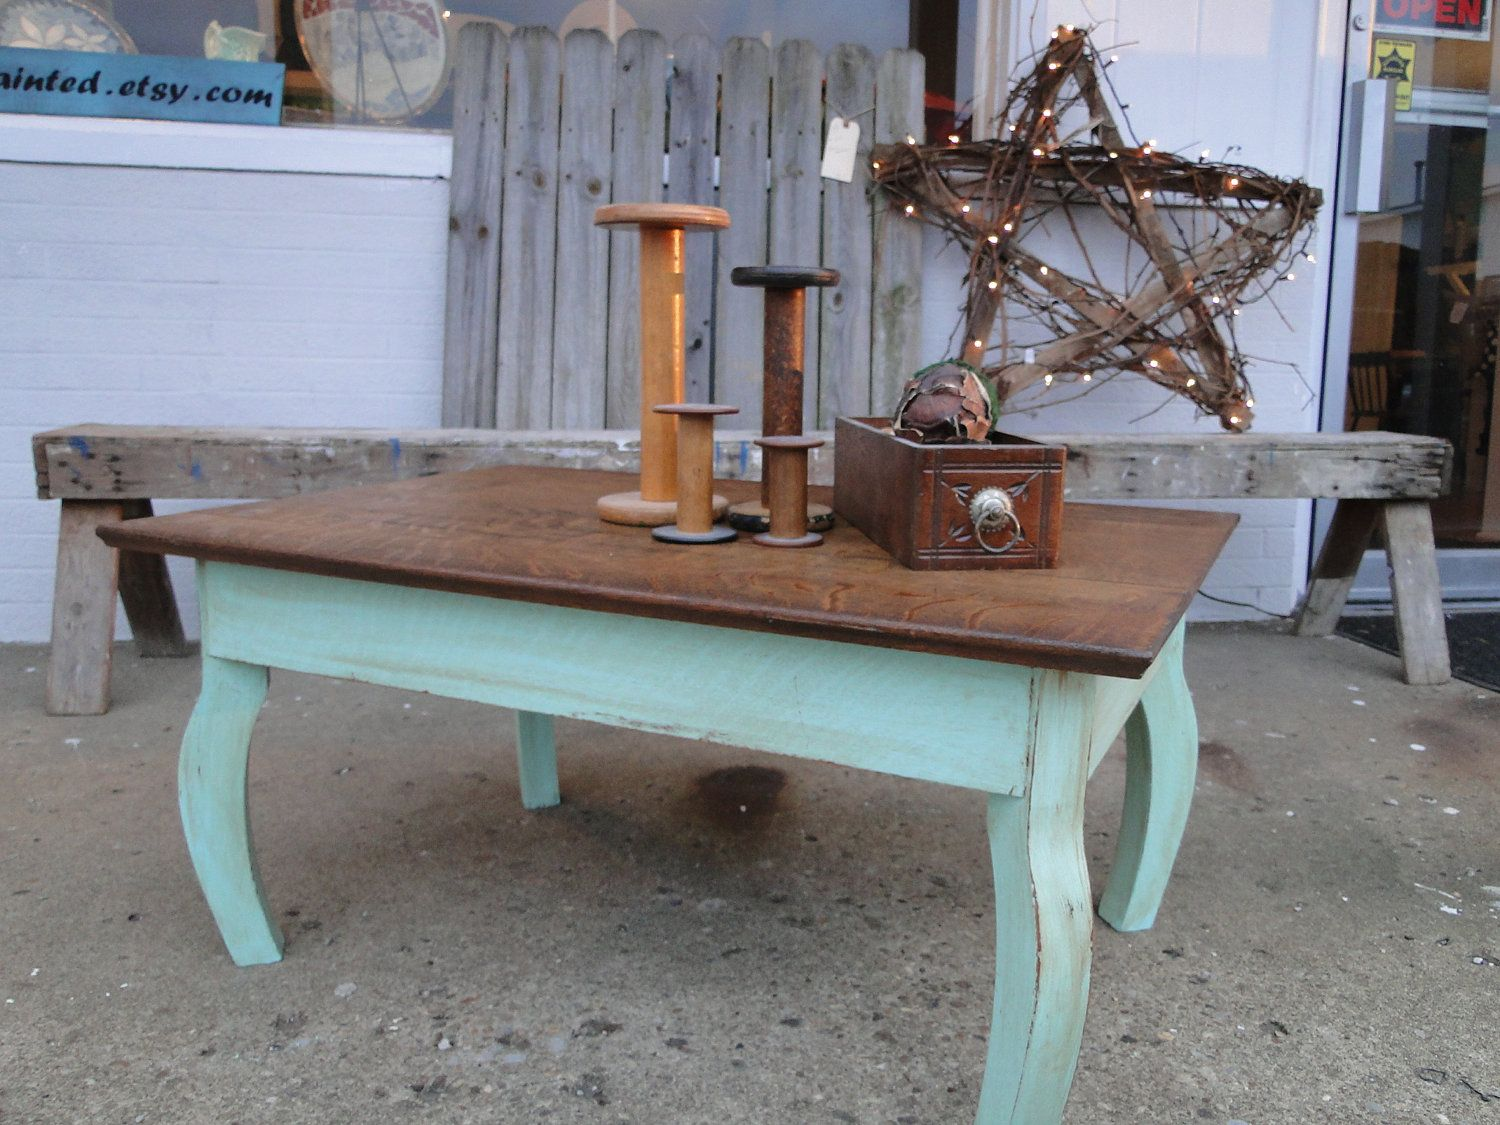 Vintage Wooden Oak Coffee Table In Distressed Seafoam Green Rustic Beach Cottage Shabby Chic Country